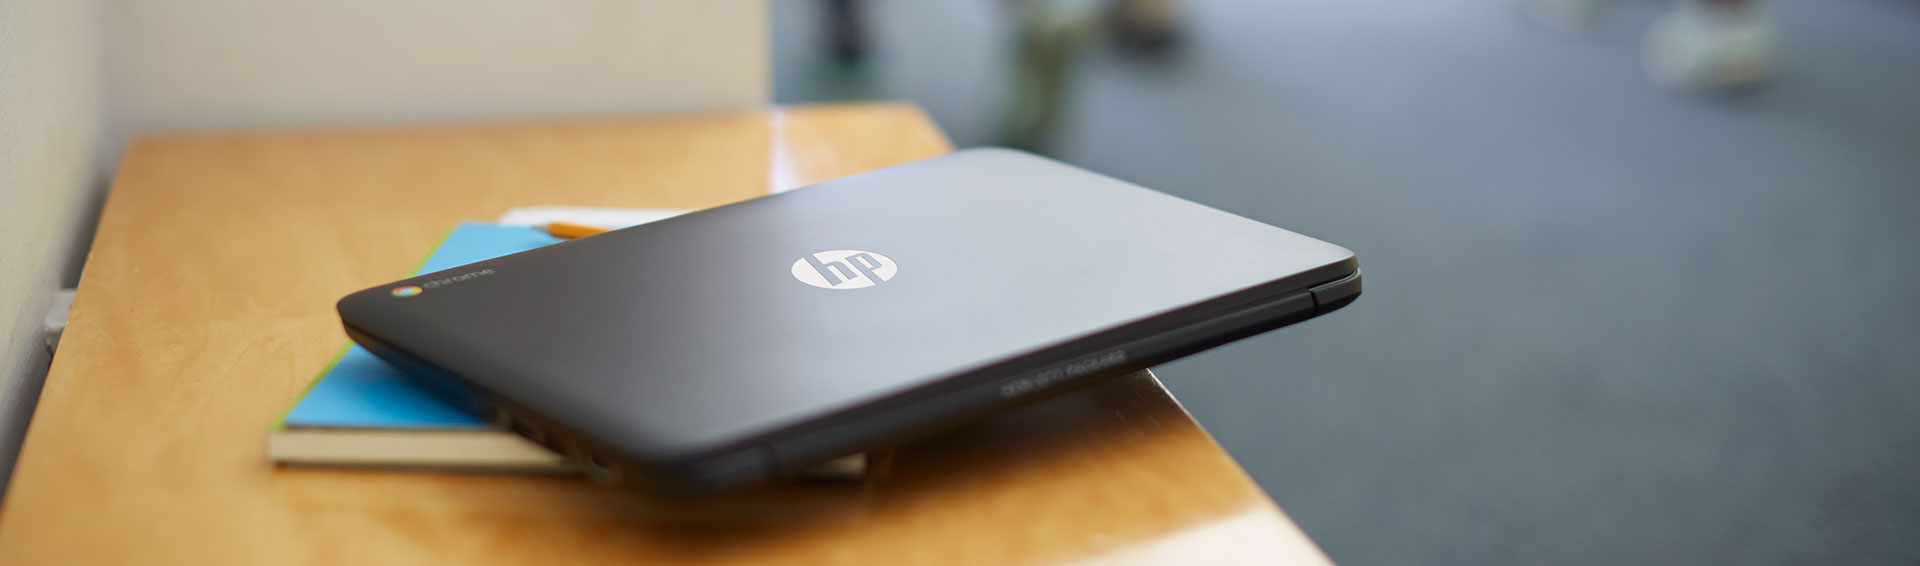 hp-chromebooks-for-schools-sligo-galway-donegal